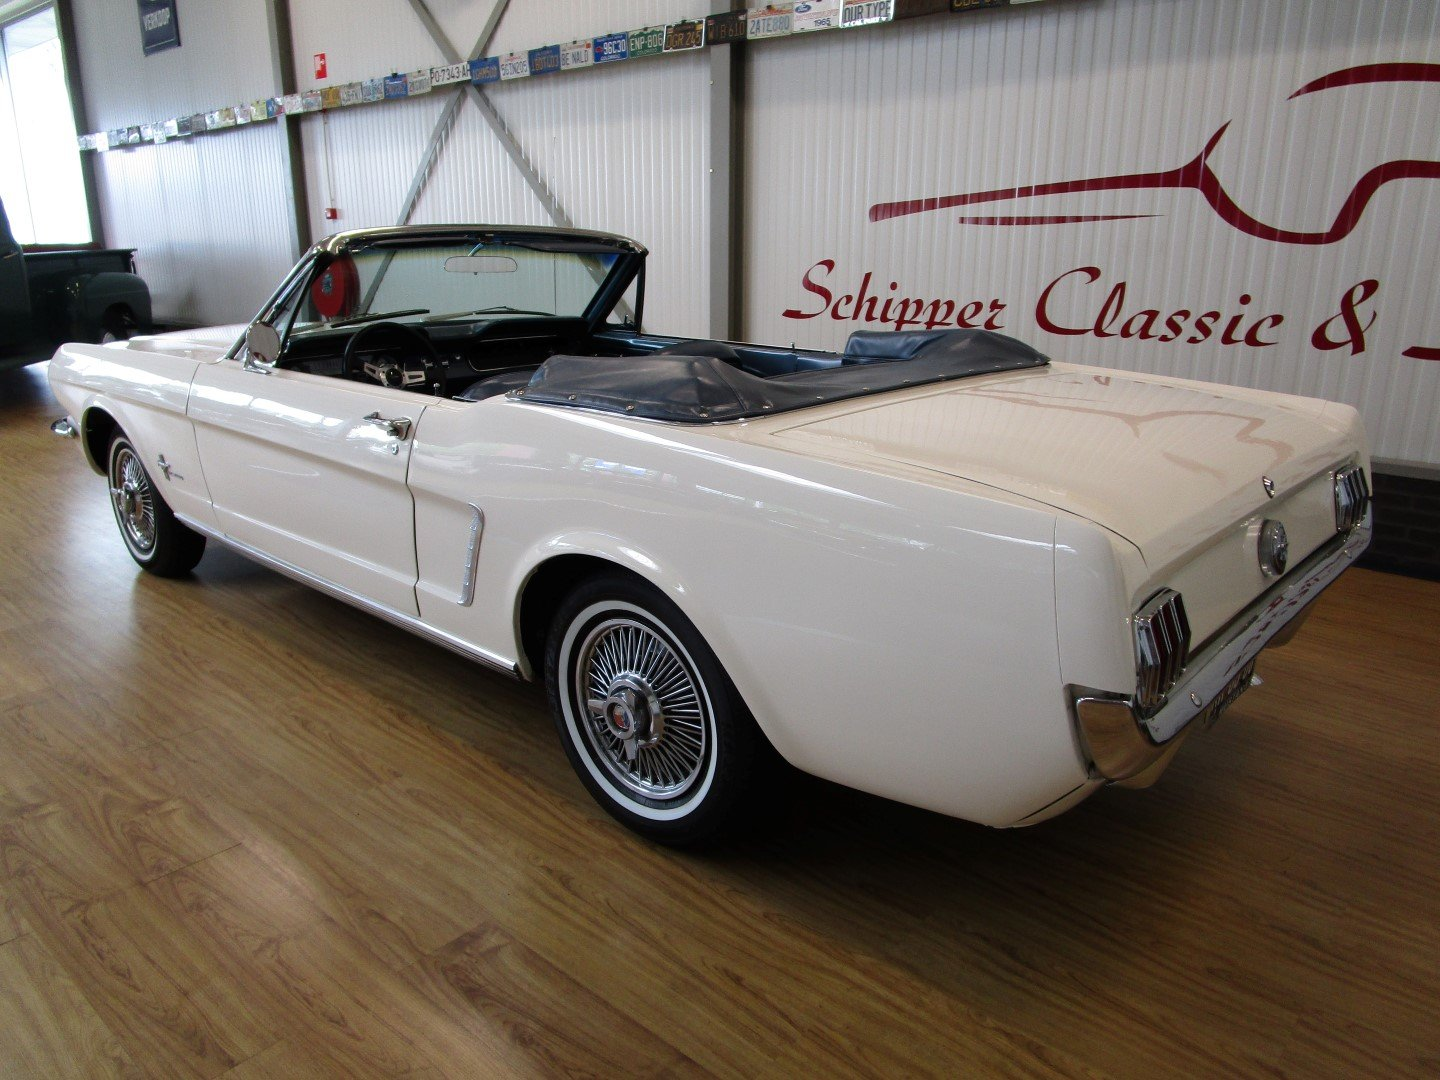 Ford Mustang 200CU Automatic Cabrio Early model 1964 1/2 For Sale (picture 3 of 6)